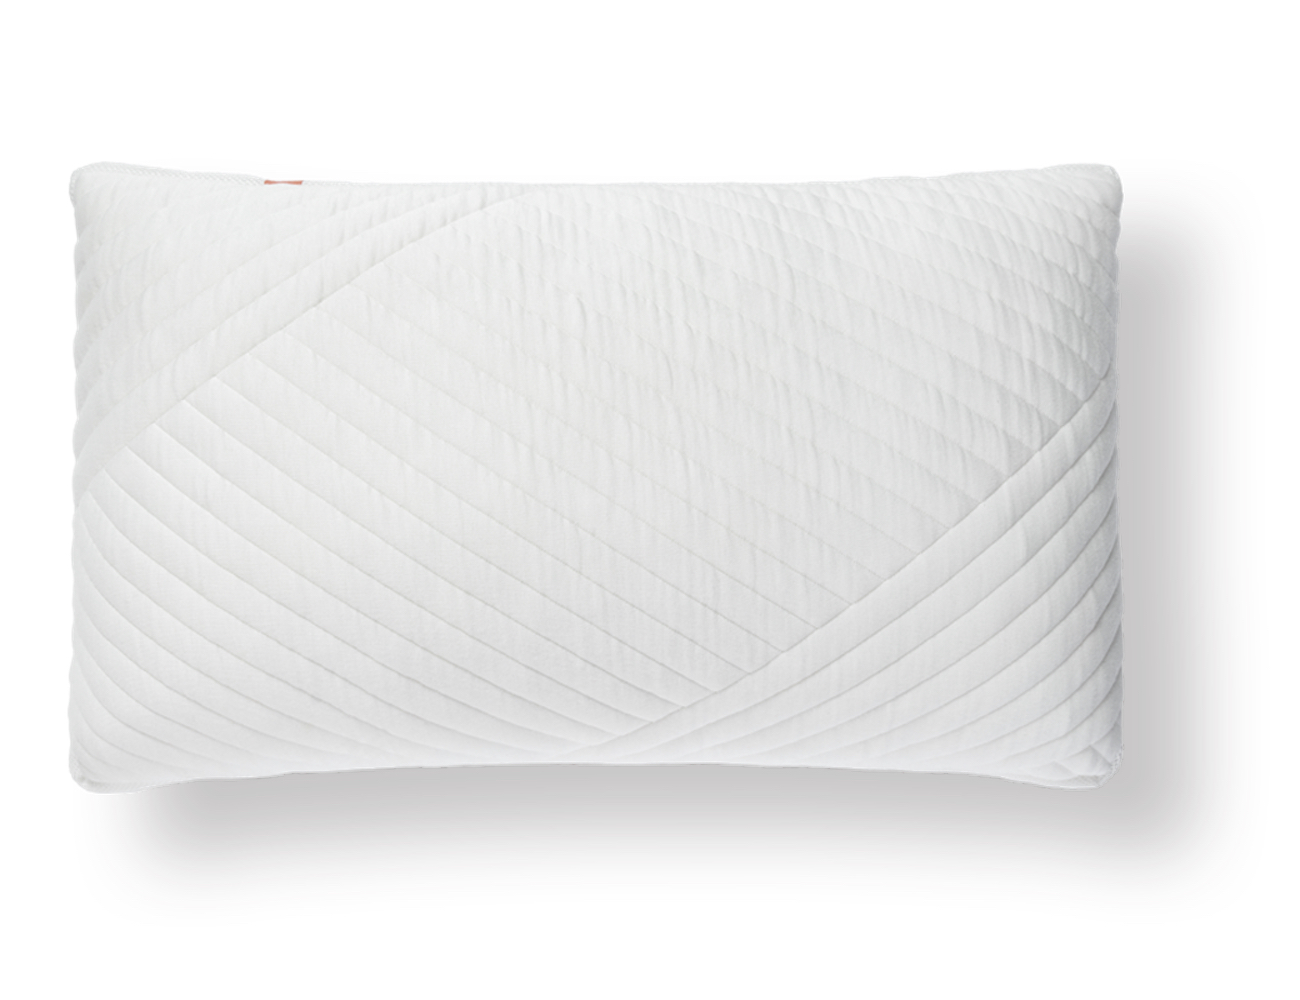 Oreous 360-Degree Supportive Pillow